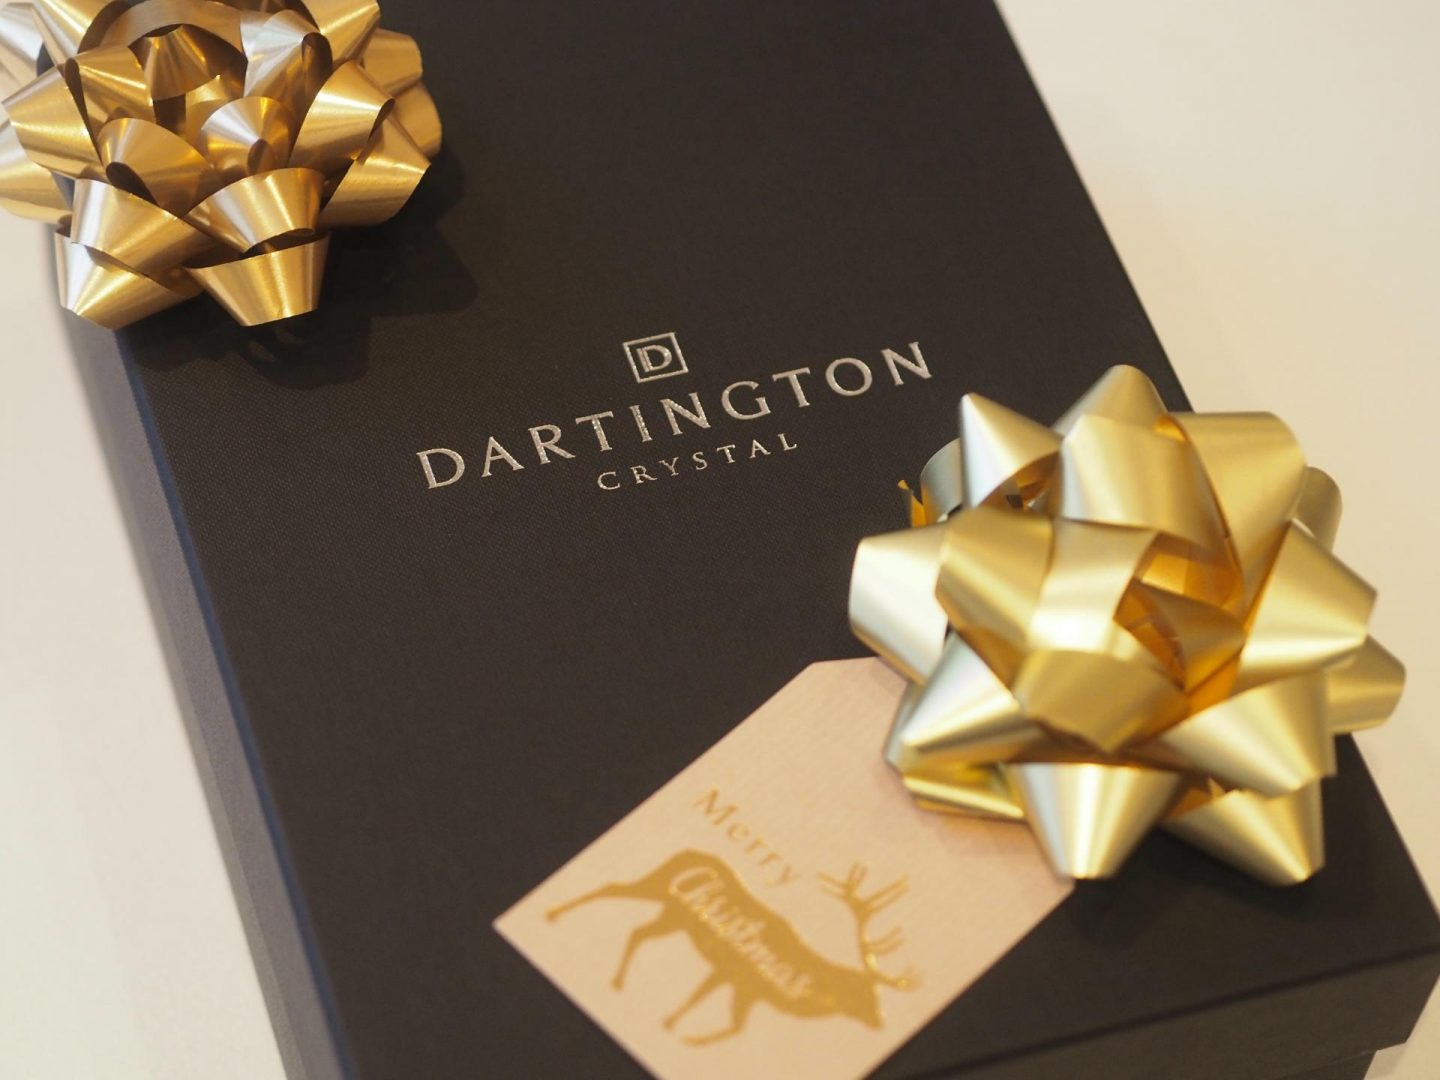 Dartington Wine Essentials Champagne Flutes - Packaged In A Silk Lined Gift Box